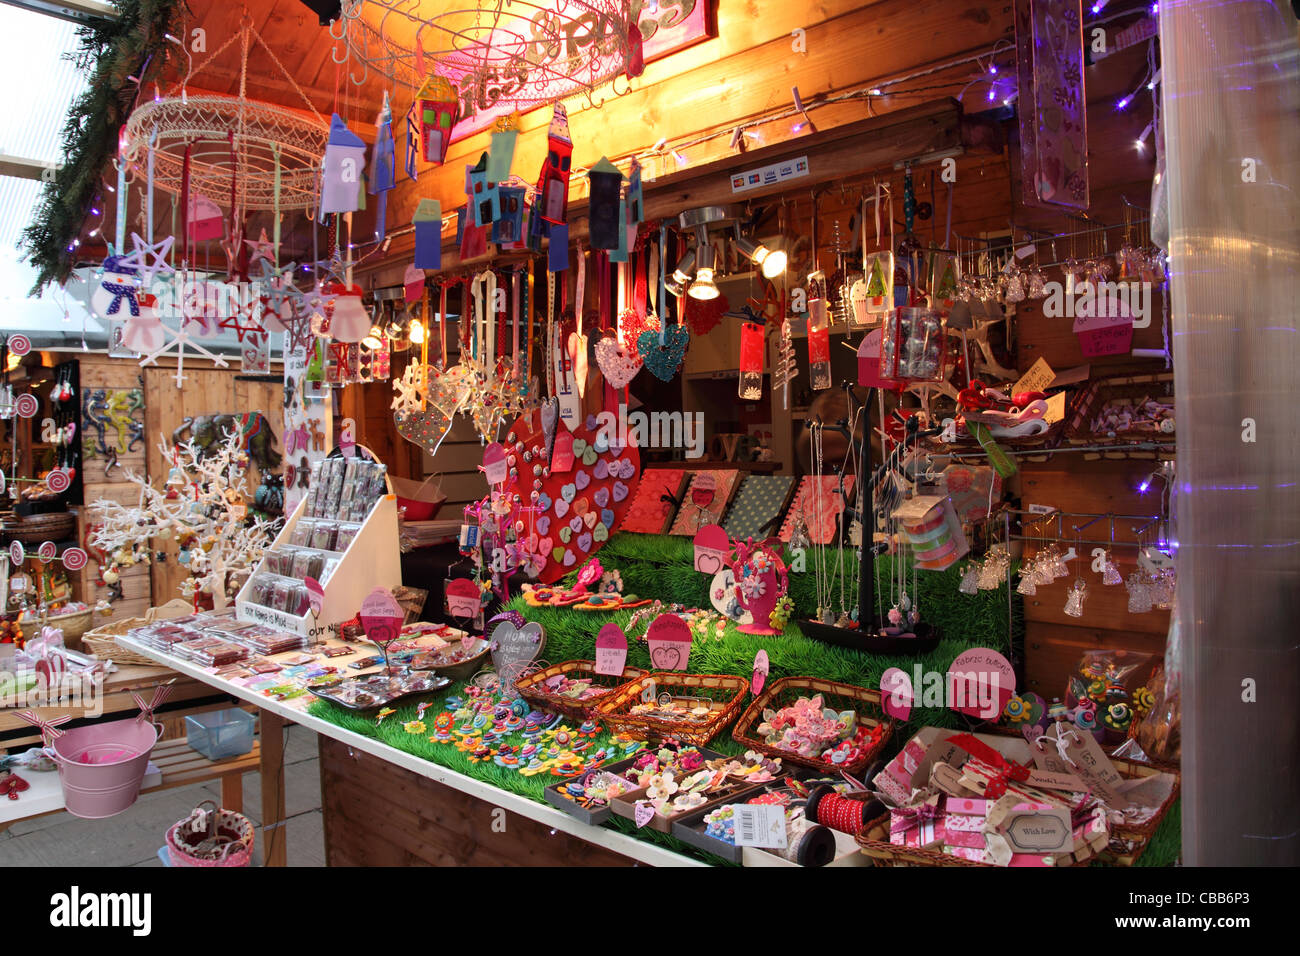 Close up of a colourful stall at Bath Christmas Market, England - Stock Image